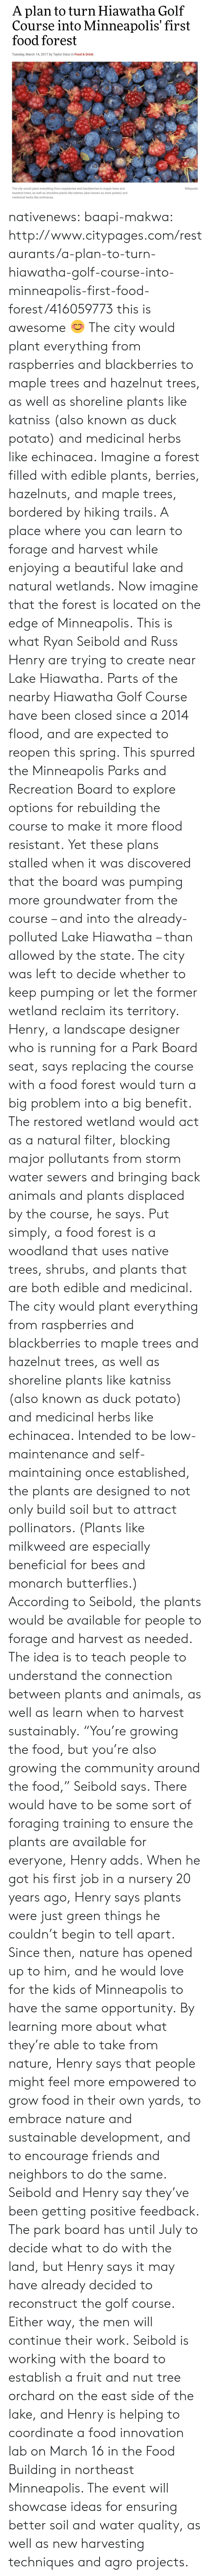 "woodland: A plan to turn Hiawatha Golif  Course into Minneapolis' first  food forest  Tuesday, March 14, 2017 by Taylor Danz in Food & Drink  Wikipedia  The city would plant everything from raspberries and blackberries to maple trees and  hazelnut trees, as well as shoreline plants like katniss (also known as duck potato) and  medicinal herbs like echinacea. nativenews: baapi-makwa:  http://www.citypages.com/restaurants/a-plan-to-turn-hiawatha-golf-course-into-minneapolis-first-food-forest/416059773  this is awesome 😊  The city would plant everything from raspberries and blackberries to maple trees and hazelnut trees, as well as shoreline plants like katniss (also known as duck potato) and medicinal herbs like echinacea.       Imagine a forest filled with edible plants, berries, hazelnuts, and maple trees, bordered by hiking trails. A place where you can learn to forage and harvest while enjoying a beautiful lake and natural wetlands.   Now imagine that the forest is located on the edge of Minneapolis.   This is what Ryan Seibold and Russ Henry are trying to create near Lake Hiawatha.   Parts of the nearby Hiawatha Golf Course have been closed since a 2014 flood, and are expected to reopen this spring. This spurred the Minneapolis Parks and Recreation Board to explore options for rebuilding the course to make it more flood resistant.   Yet these plans stalled when it was discovered that the board was pumping more groundwater from the course – and into the already-polluted Lake Hiawatha – than allowed by the state. The city was left to decide whether to keep pumping or let the former wetland reclaim its territory.   Henry, a landscape designer who is running for a Park Board seat, says replacing the course with a food forest would turn a big problem into a big benefit.   The restored wetland would act as a natural filter, blocking major pollutants from storm water sewers and bringing back animals and plants displaced by the course, he says.   Put simply, a food forest is a woodland that uses native trees, shrubs, and plants that are both edible and medicinal. The city would plant everything from raspberries and blackberries to maple trees and hazelnut trees, as well as shoreline plants like katniss (also known as duck potato) and medicinal herbs like echinacea.    Intended to be low-maintenance and self-maintaining once established, the plants are designed to not only build soil but to attract pollinators. (Plants like milkweed are especially beneficial for bees and monarch butterflies.)   According to Seibold, the plants would be available for people to forage and harvest as needed. The idea is to teach people to understand the connection between plants and animals, as well as learn when to harvest sustainably.   ""You're growing the food, but you're also growing the community around the food,"" Seibold says.   There would have to be some sort of foraging training to ensure the plants are available for everyone, Henry adds.   When he got his first job in a nursery 20 years ago, Henry says plants were just green things he couldn't begin to tell apart. Since then, nature has opened up to him, and he would love for the kids of Minneapolis to have the same opportunity.   By learning more about what they're able to take from nature, Henry says that people might feel more empowered to grow food in their own yards, to embrace nature and sustainable development, and to encourage friends and neighbors to do the same.   Seibold and Henry say they've been getting positive feedback. The park board has until July to decide what to do with the land, but Henry says it may have already decided to reconstruct the golf course.   Either way, the men will continue their work.   Seibold is working with the board to establish a fruit and nut tree orchard on the east side of the lake, and Henry is helping to coordinate a food innovation lab on March 16 in the Food Building in northeast Minneapolis. The event will showcase ideas for ensuring better soil and water quality, as well as new harvesting techniques and agro projects."